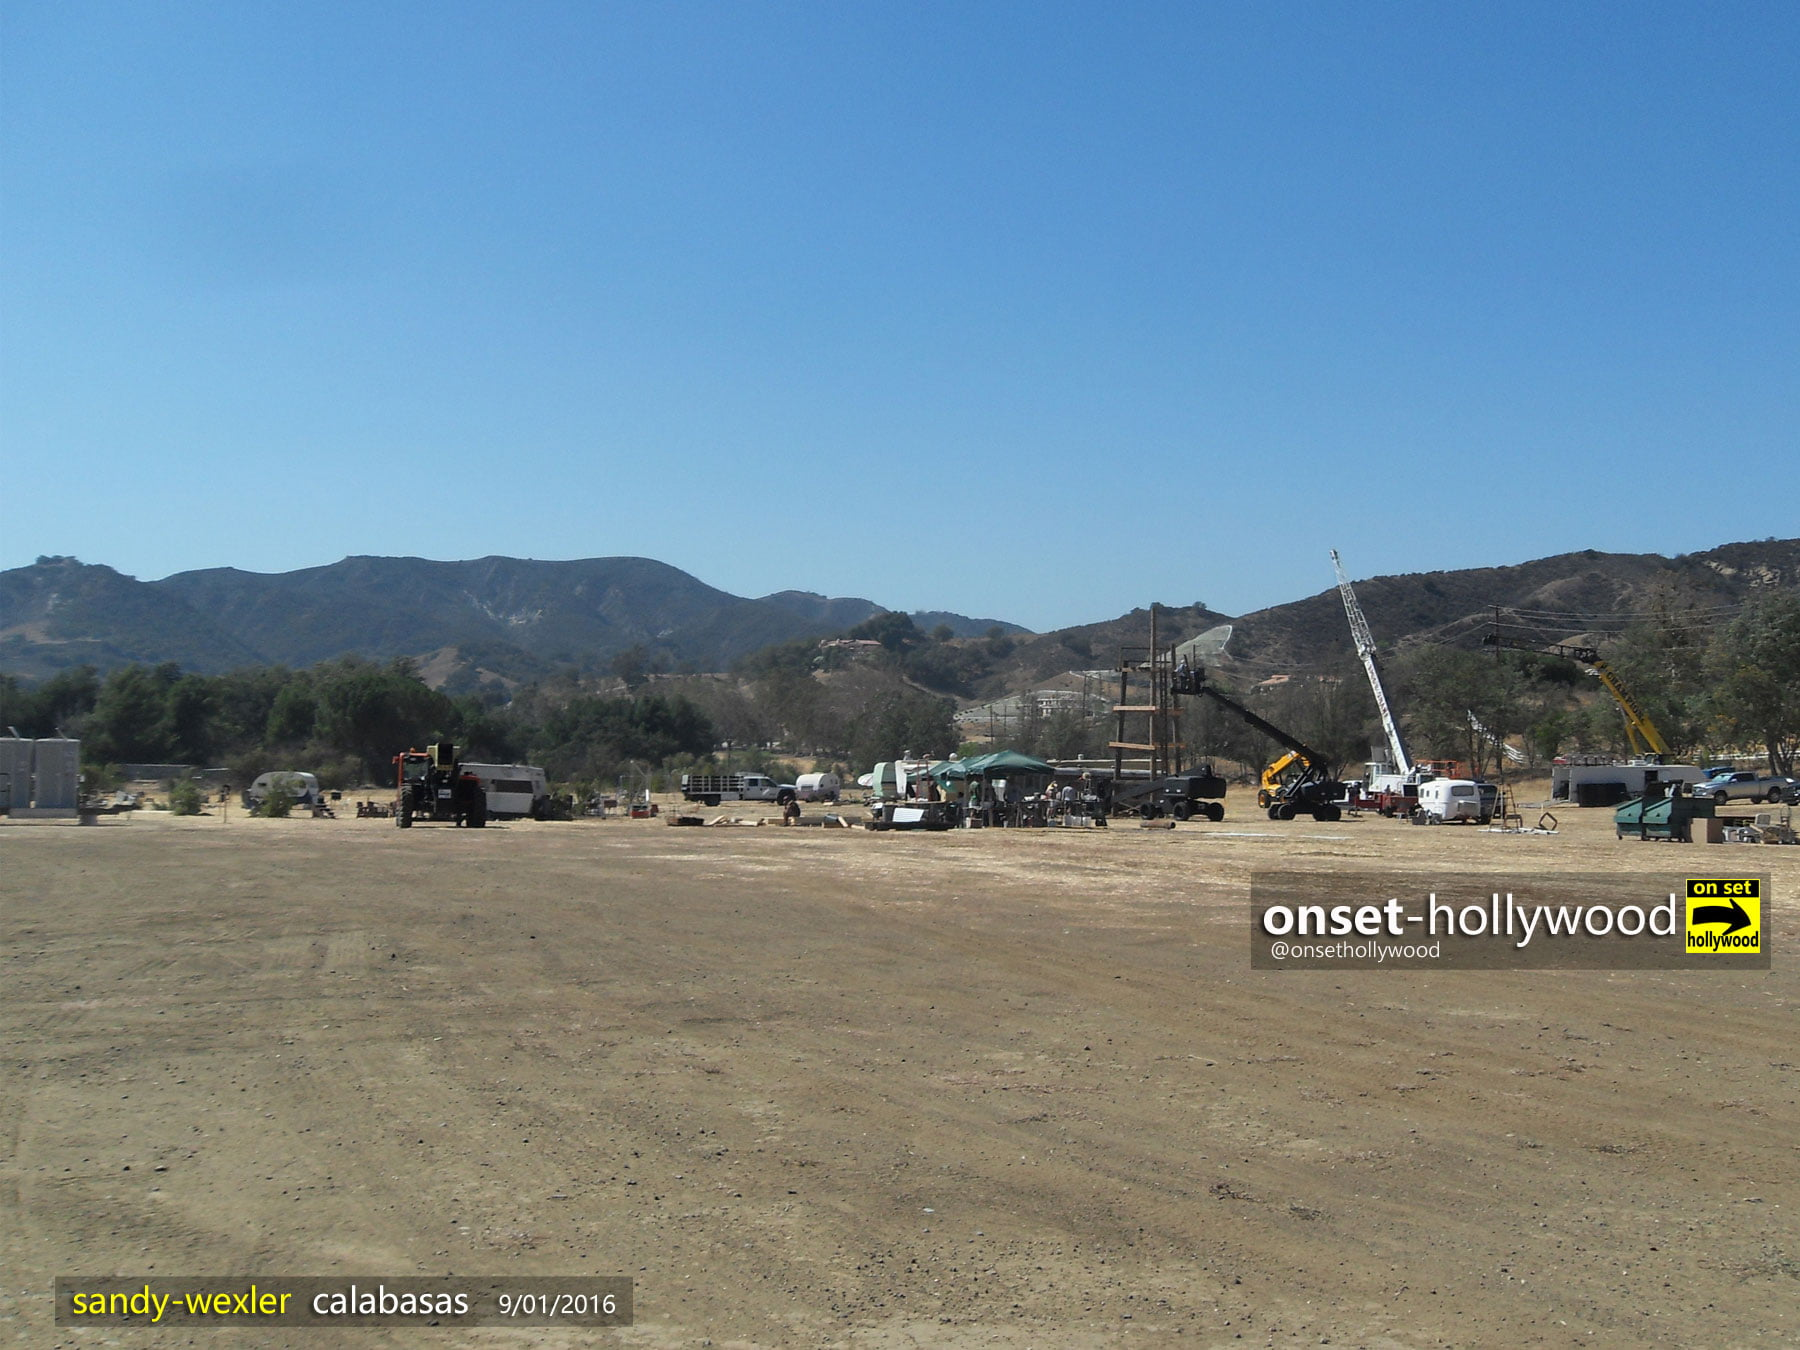 sandy-wexler-filming-locations-gillette-ranch-calabasas-1